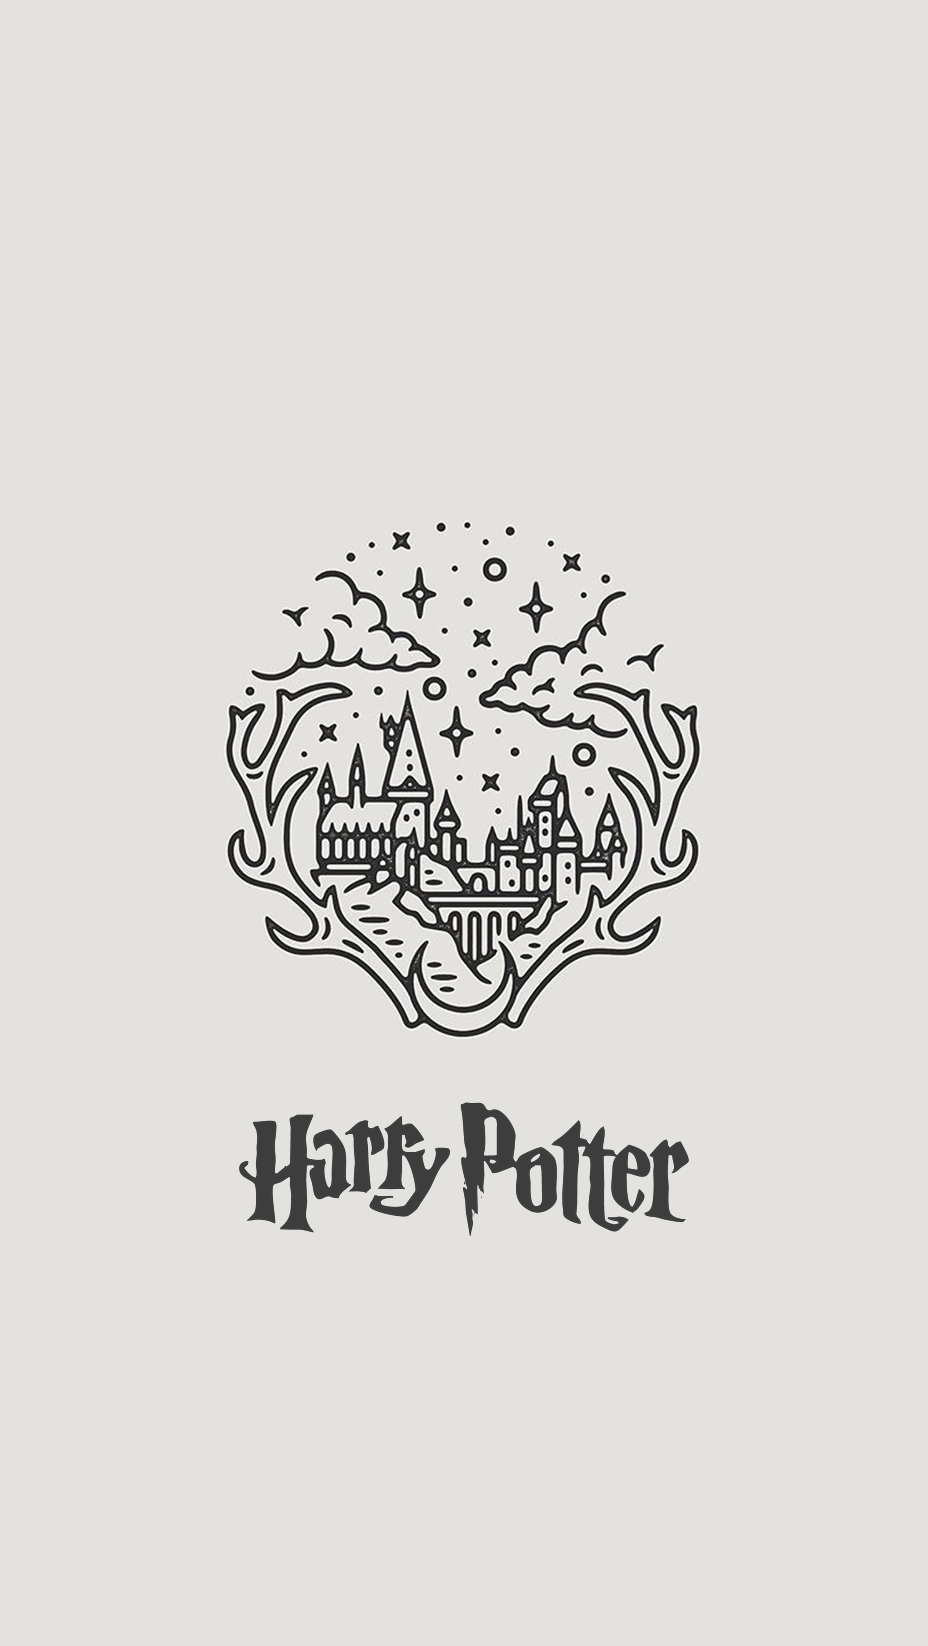 Harry Potter is a world where i would live in. Magic is pretty cool and useful.